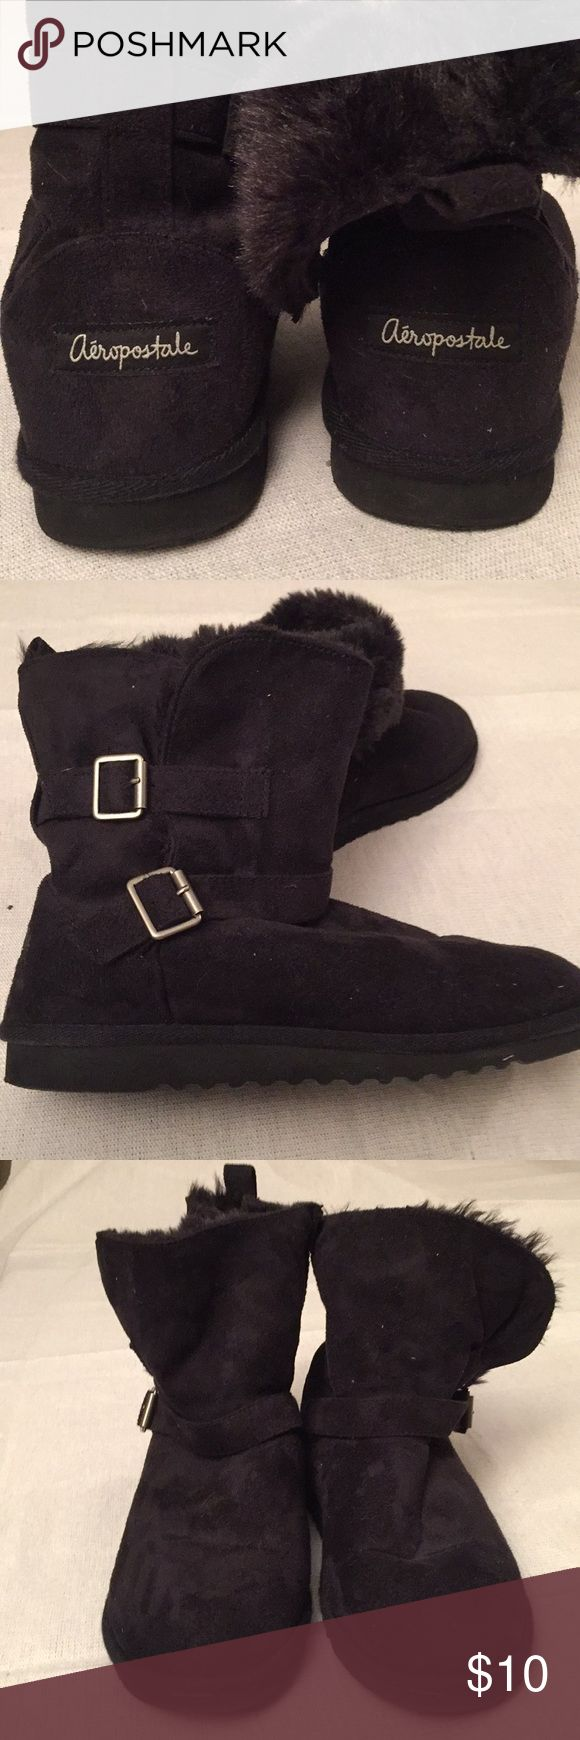 Aeropostal faux fur lined boots Women's booties/boots 🚭 Aeropostale Shoes Ankle Boots & Booties